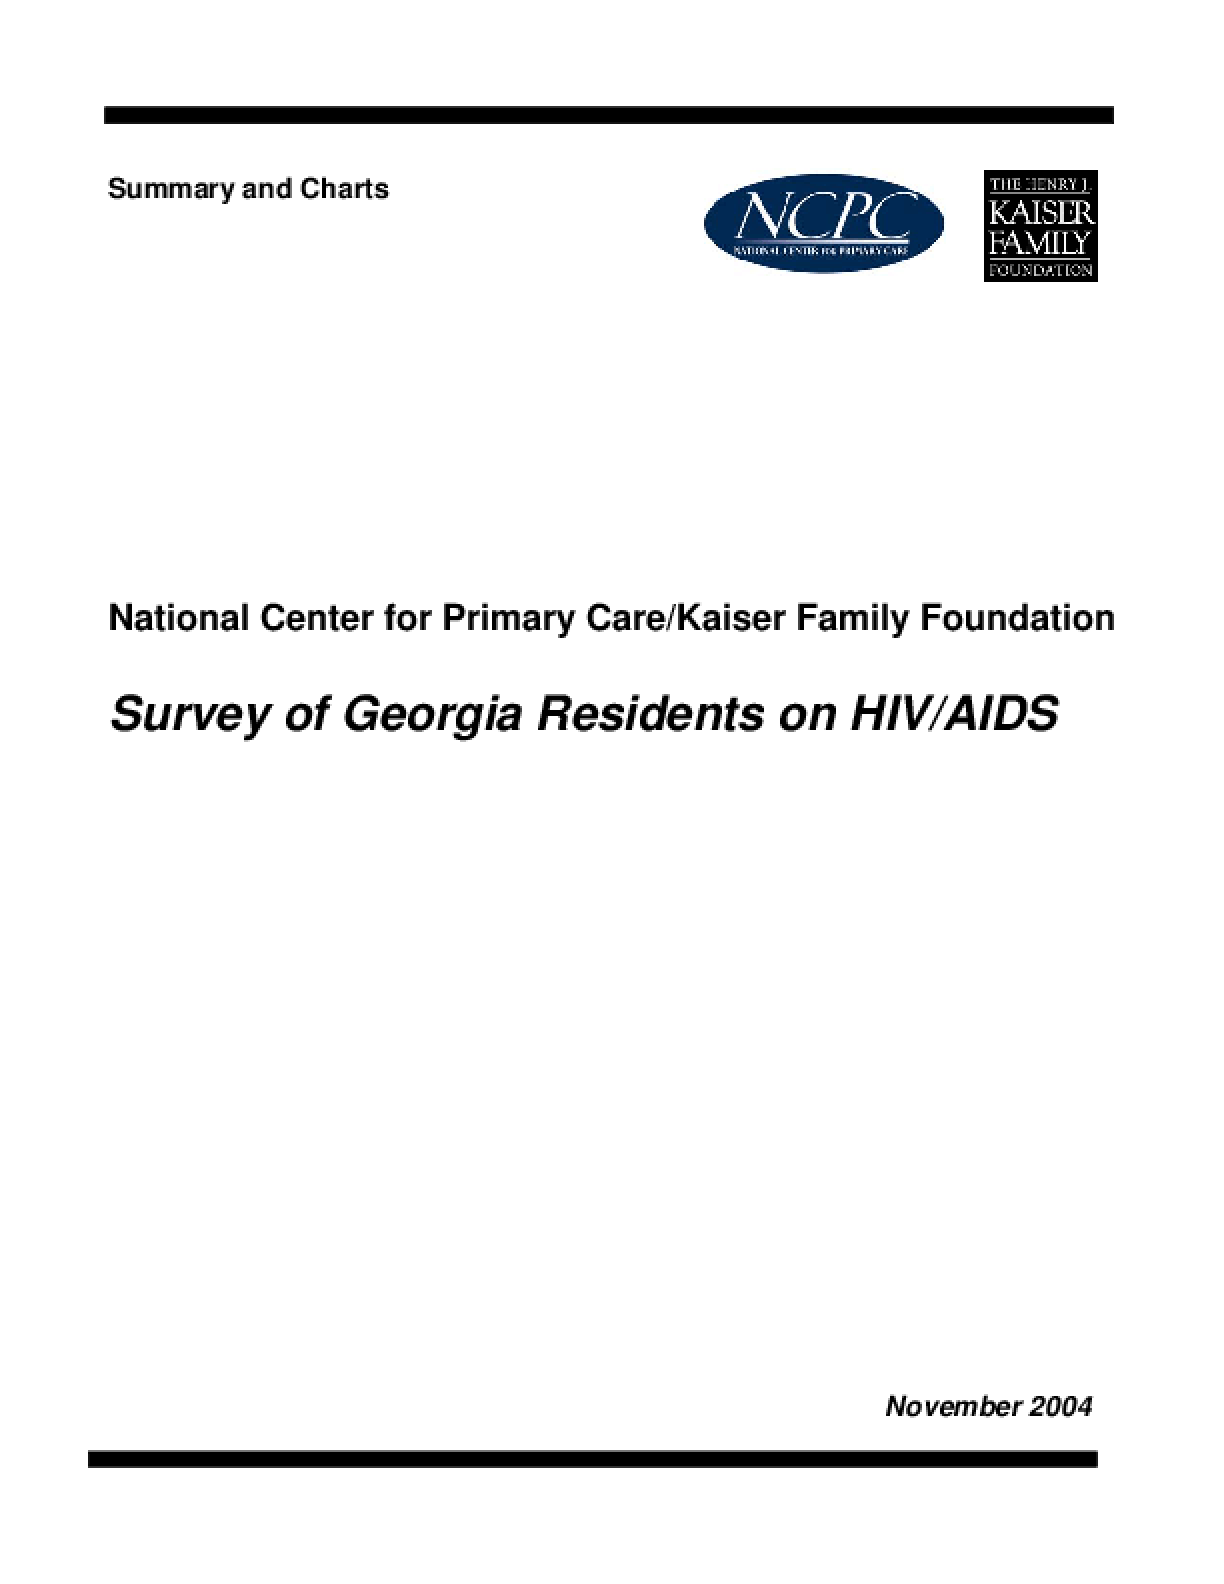 Survey of Georgia Residents on HIV/AIDS